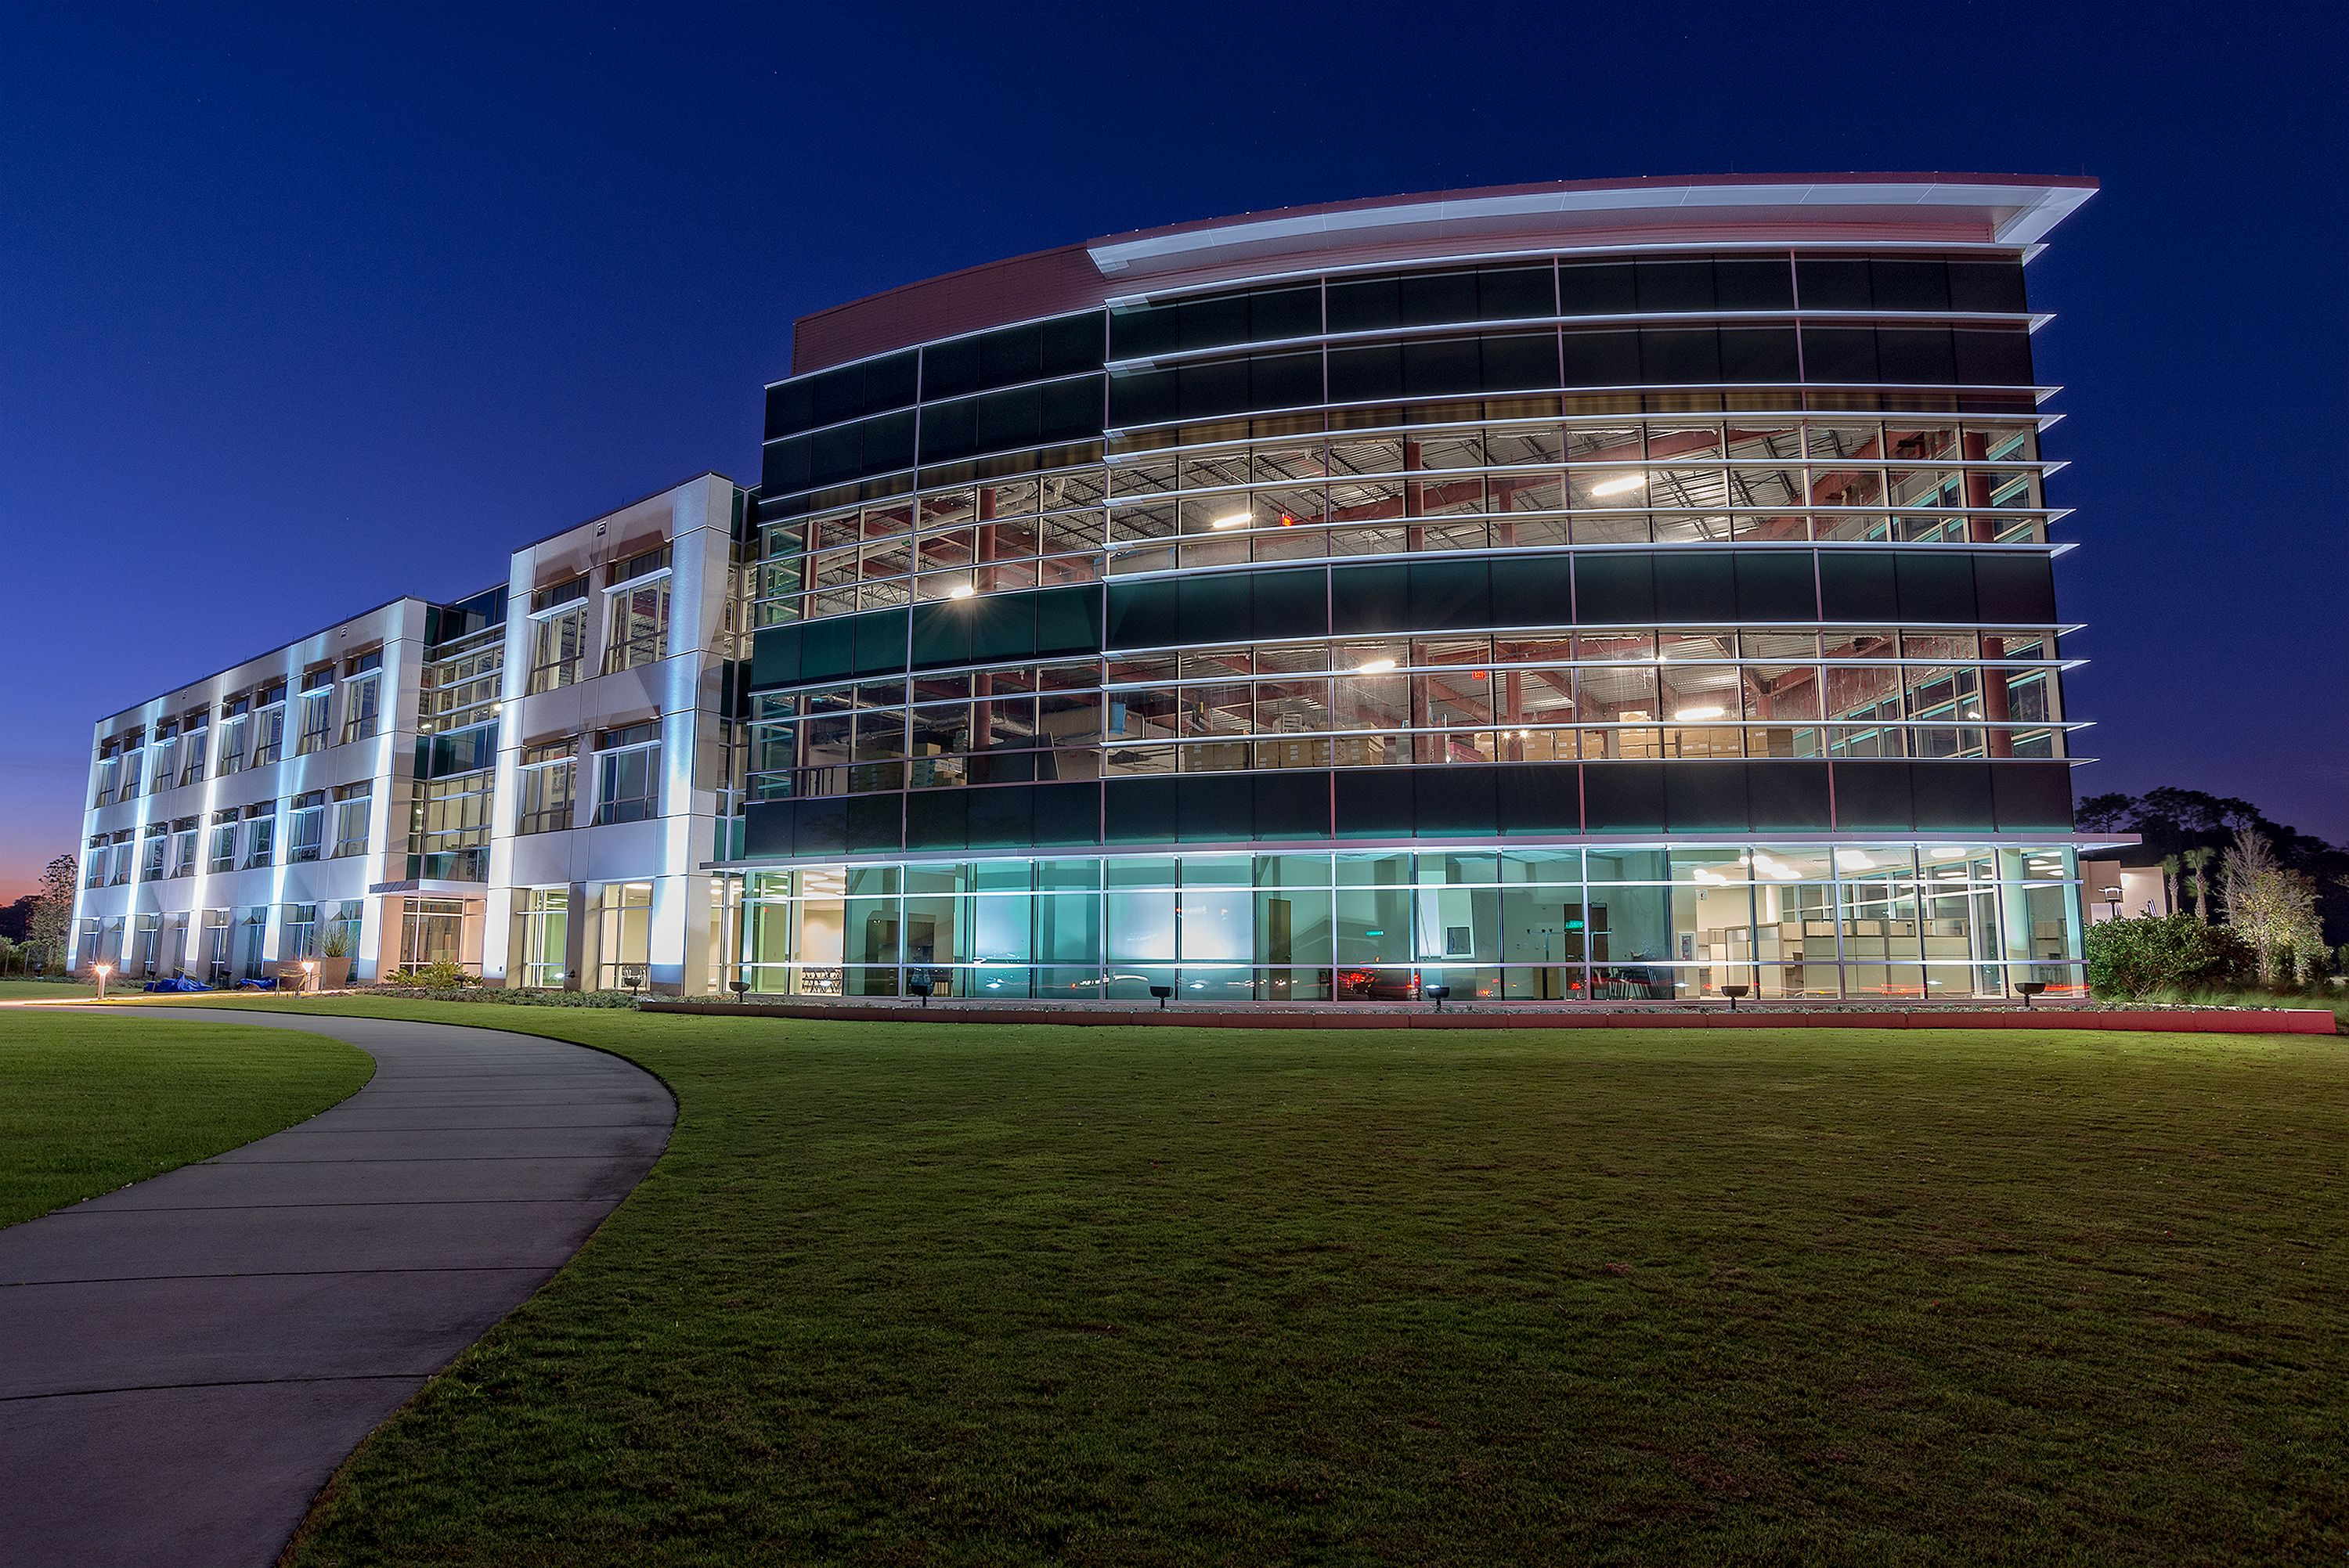 The Gateway Building at night in Lake Nona. Orlando